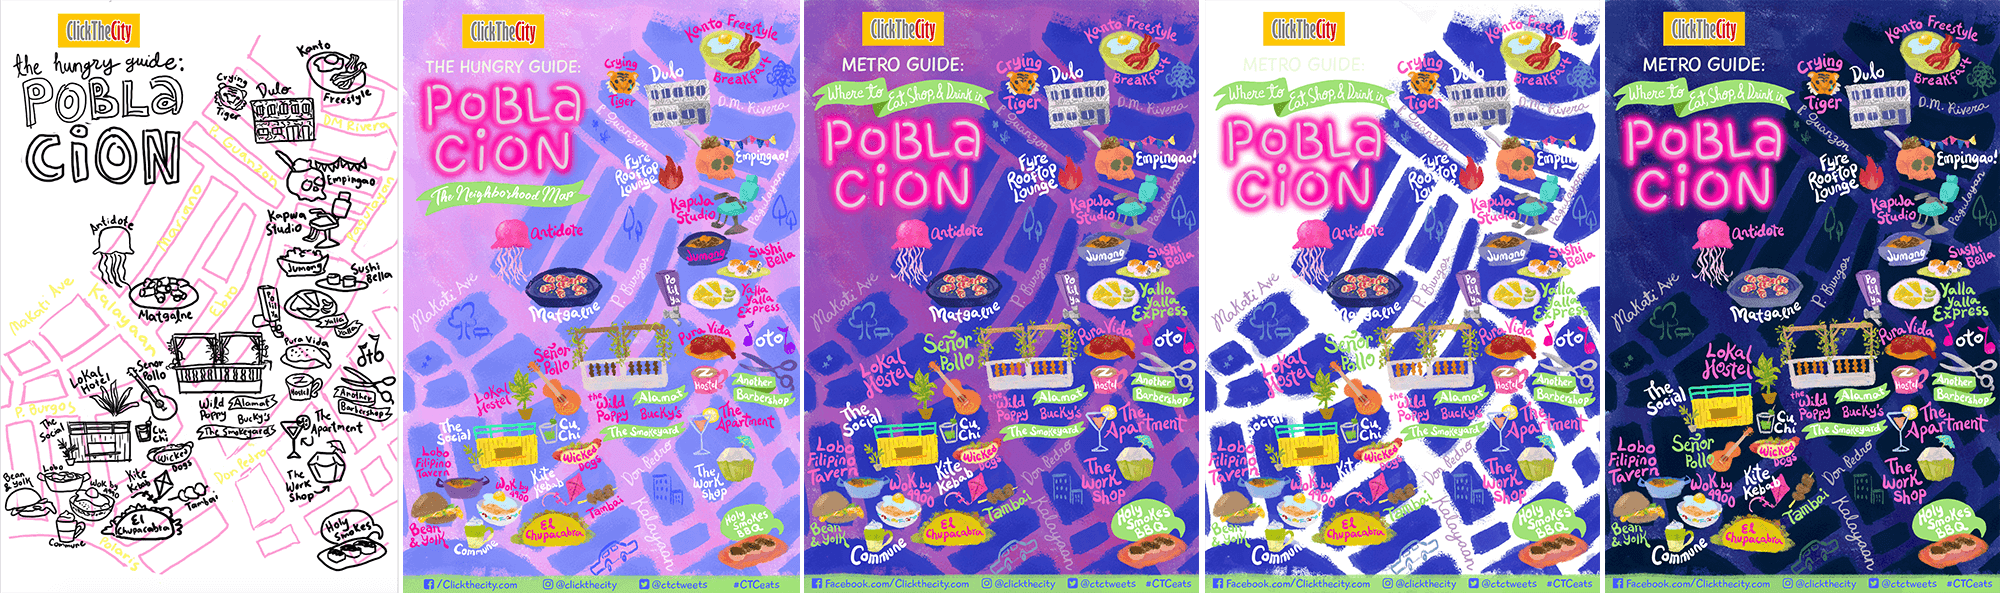 Illustrated Map Color Progress of Poblacion Makati for Click The City by Jeca Martinez